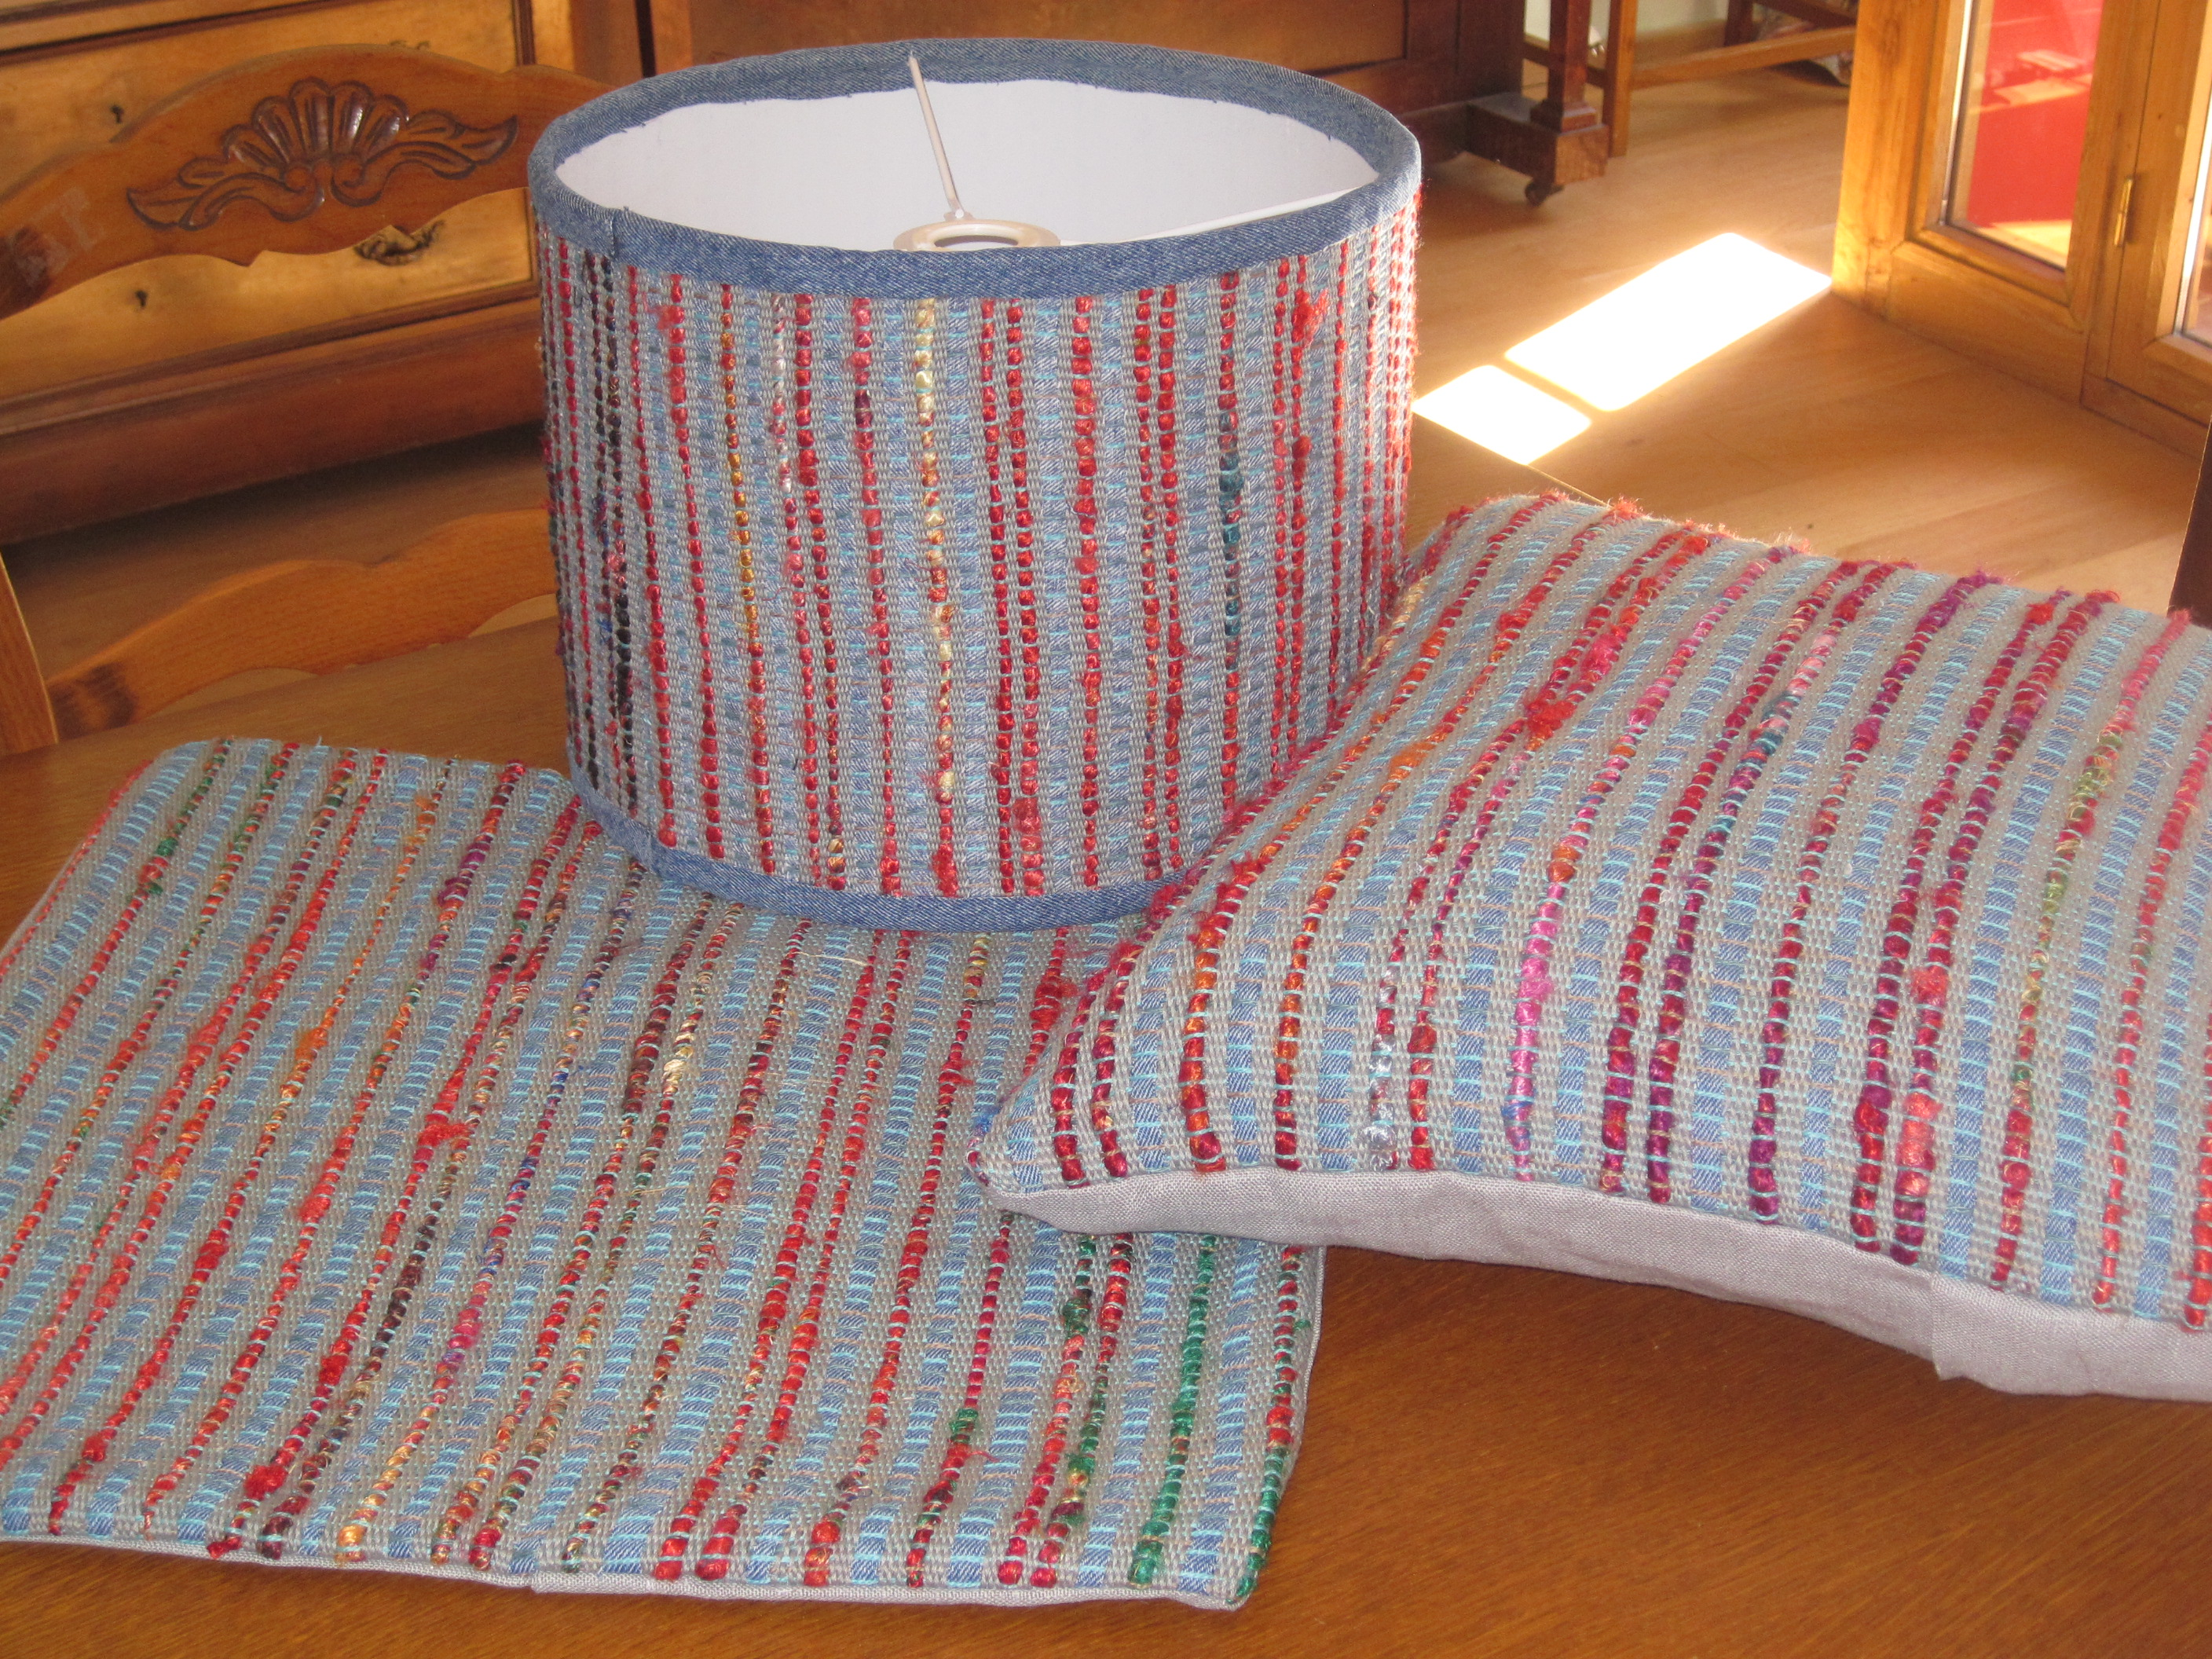 2 cushion covers with matching lampshade.